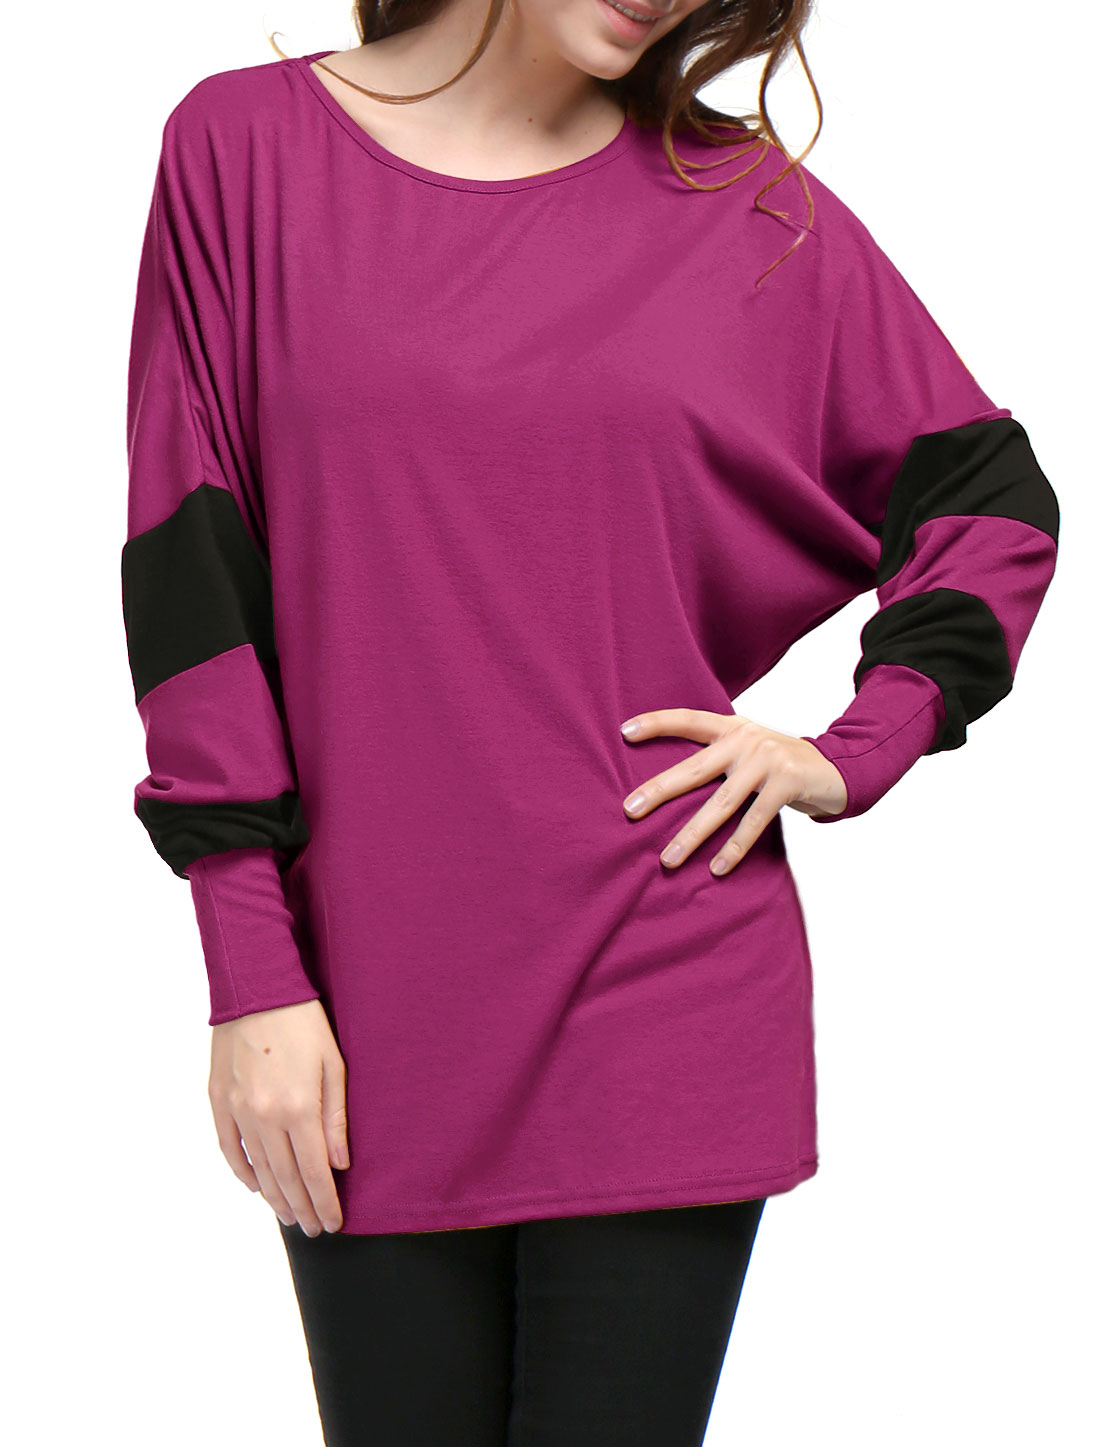 Women Color Block Batwing Sleeves Loose Tunic Top Purple L